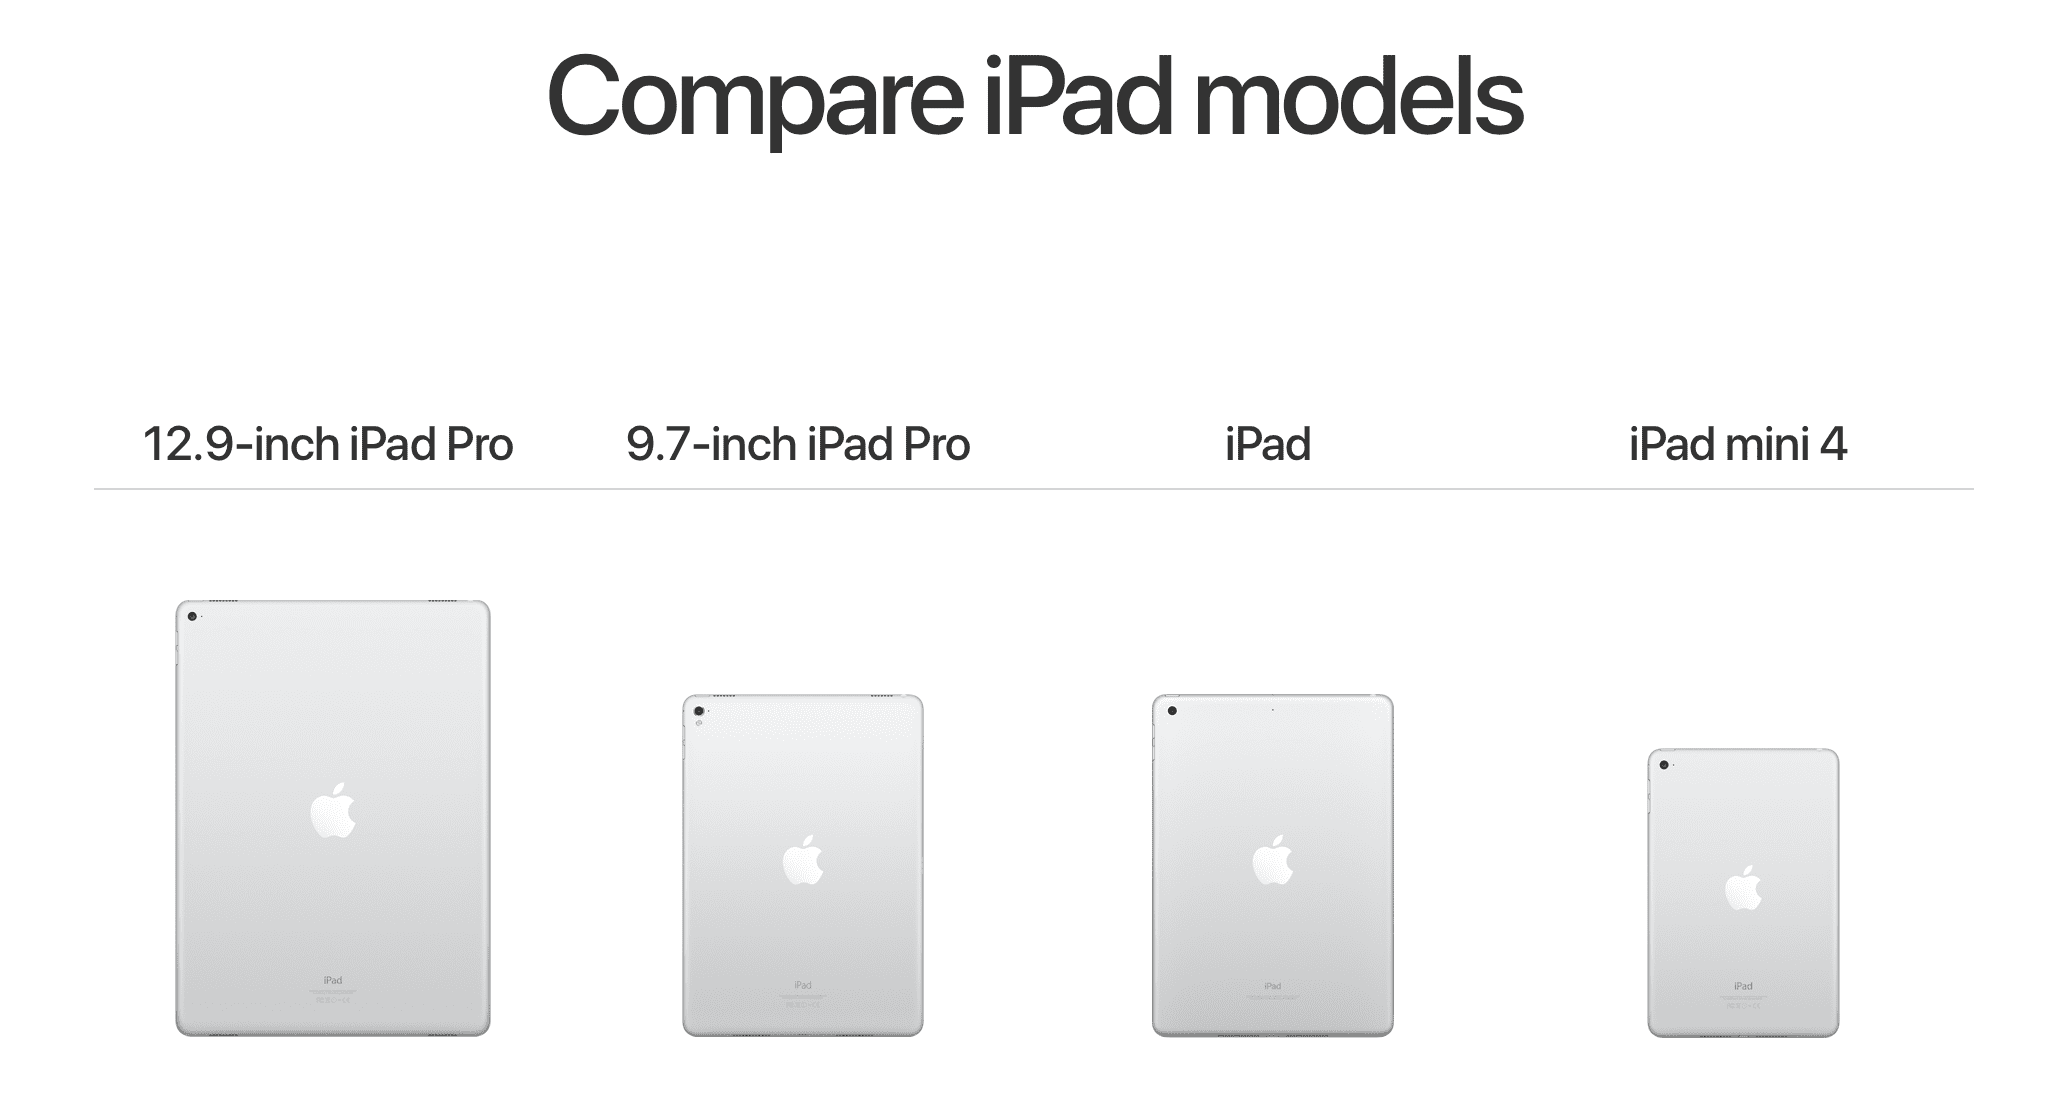 iPads comparation